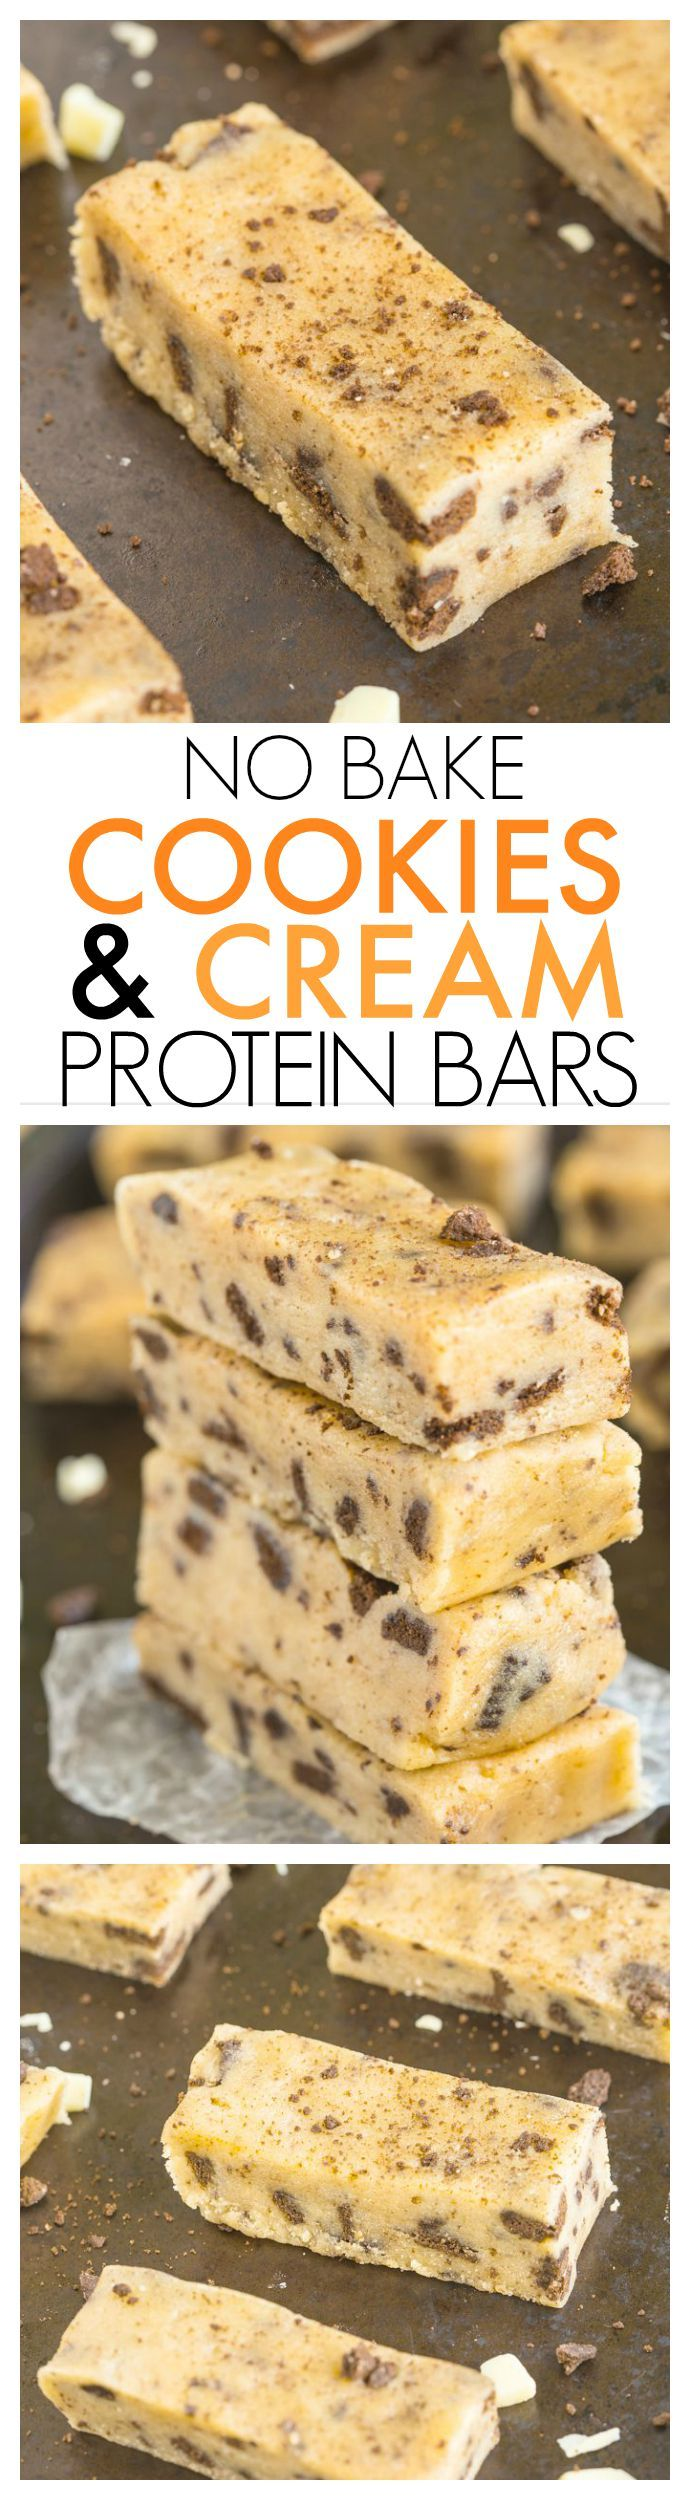 Healthy No Bake Cookies and Cream Protein Snack Bars- Just 10 minutes and 1 bowl to whip these up- Soft, chewy and no refrigeration needed- They taste like candy! {vegan, gluten free, refined sugar free + paleo option!} #backtoschool